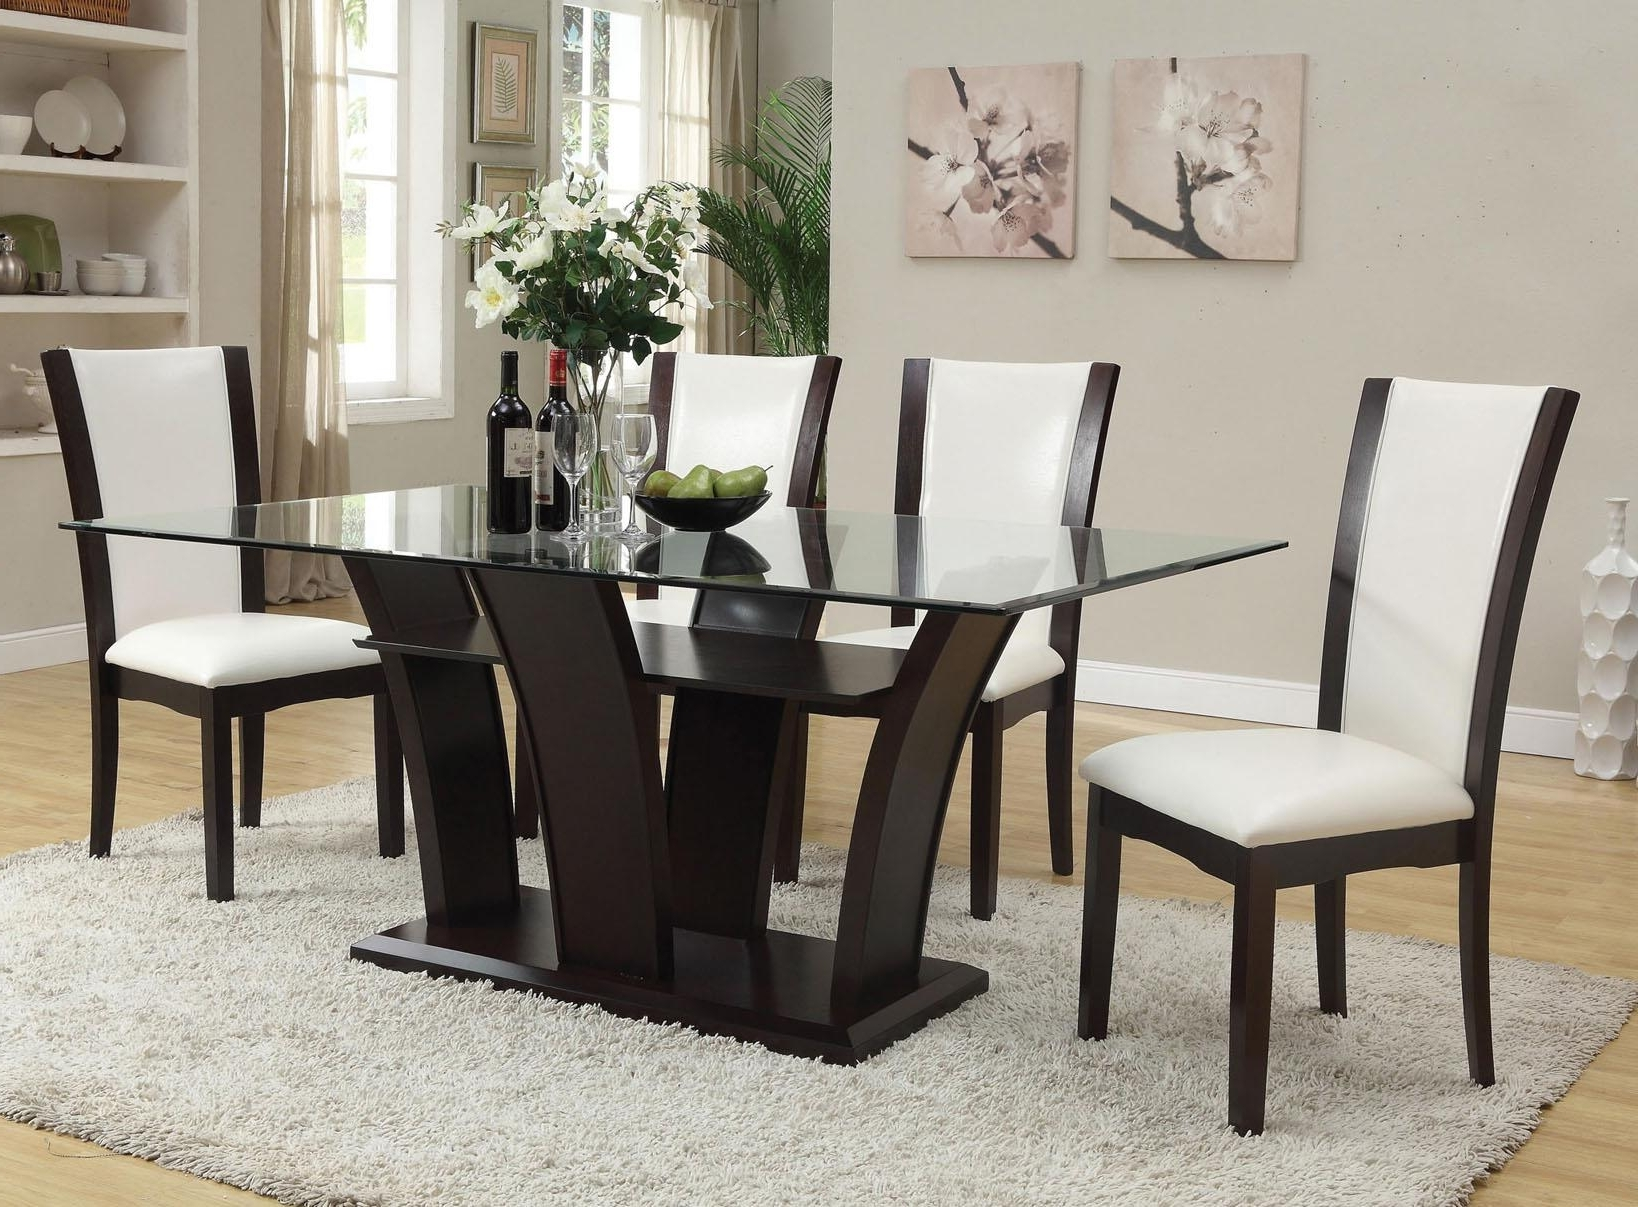 Acme Furniture Malik 70505 Contemporary Casual Dining Table W/ Glass In Well Known Contemporary Dining Sets (Gallery 15 of 25)